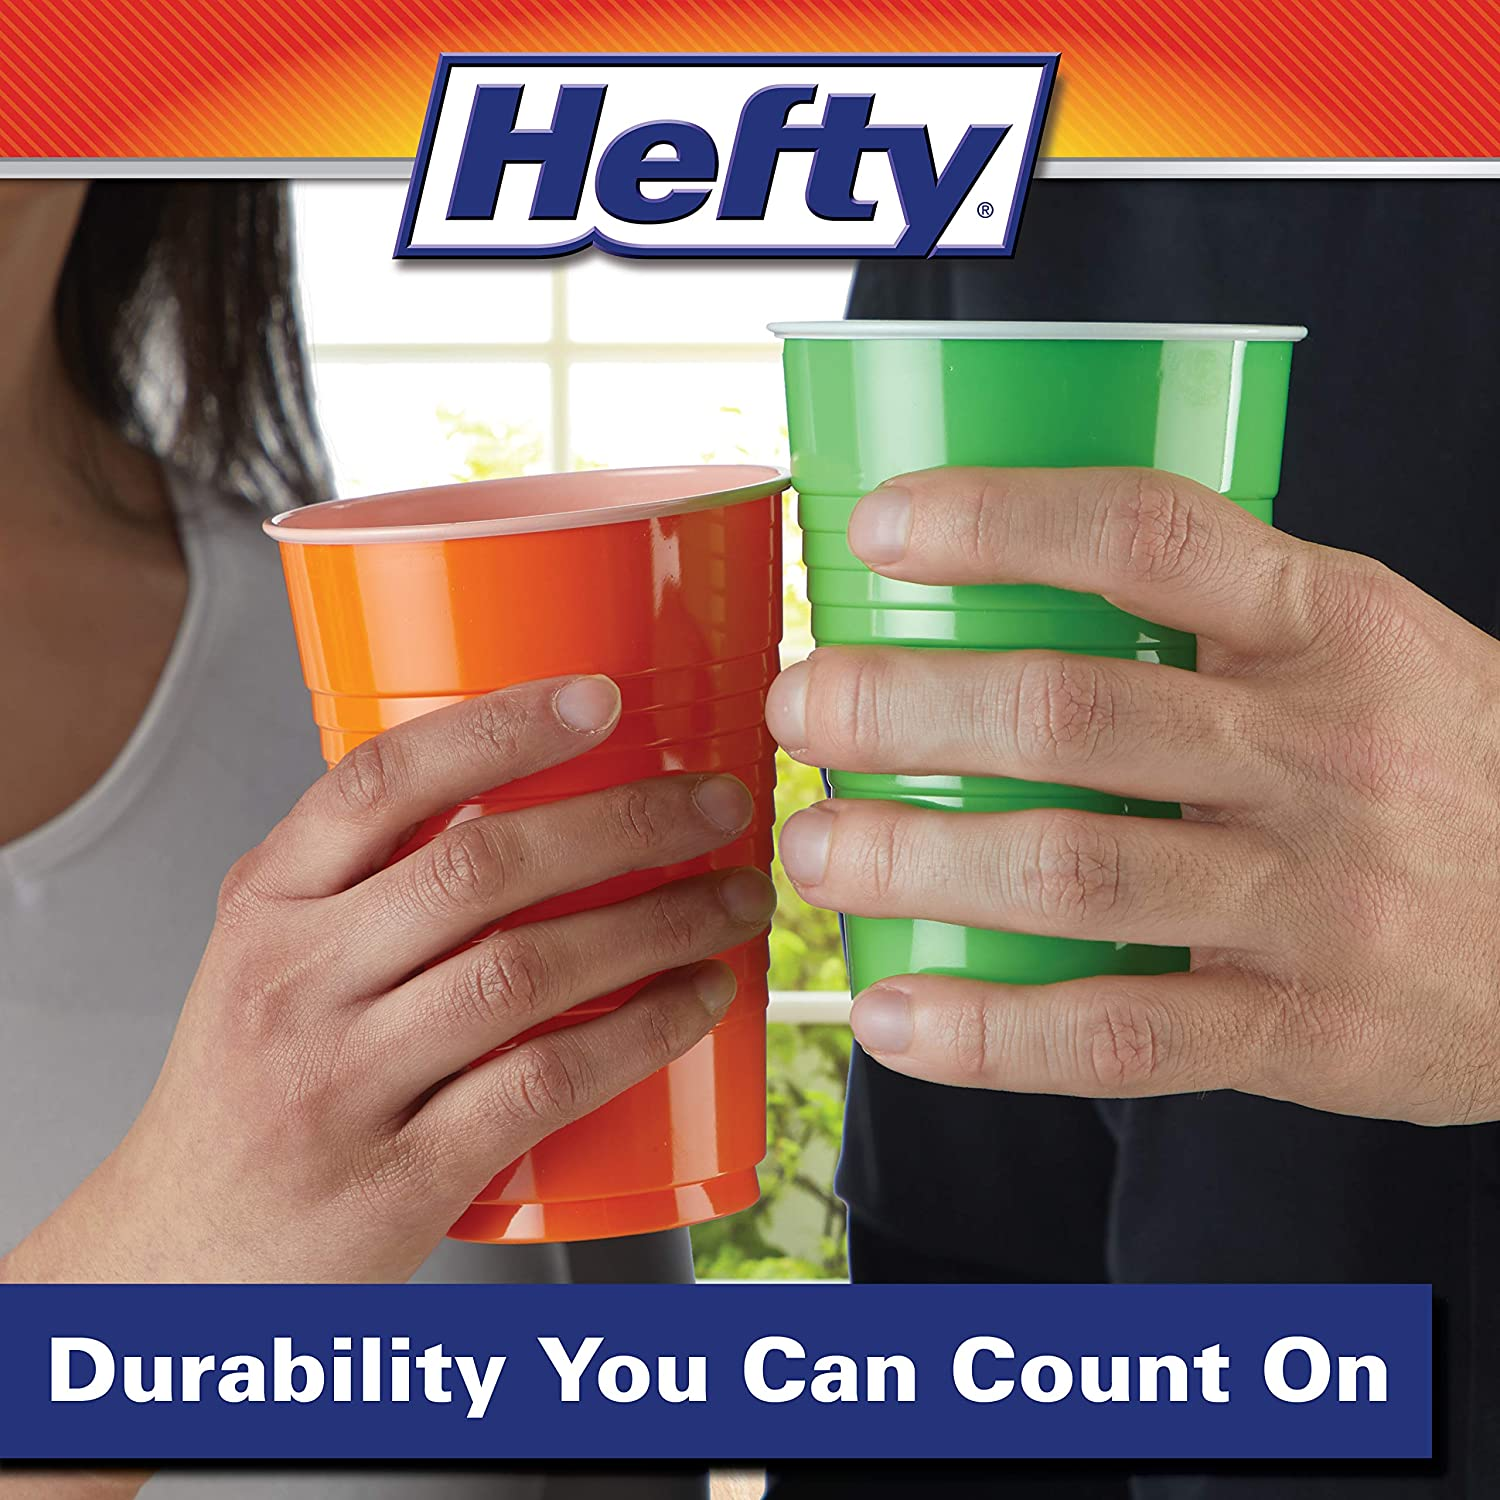 100Count Hefty Disposable Plastic Cups in Assorted Colors 16 Oz